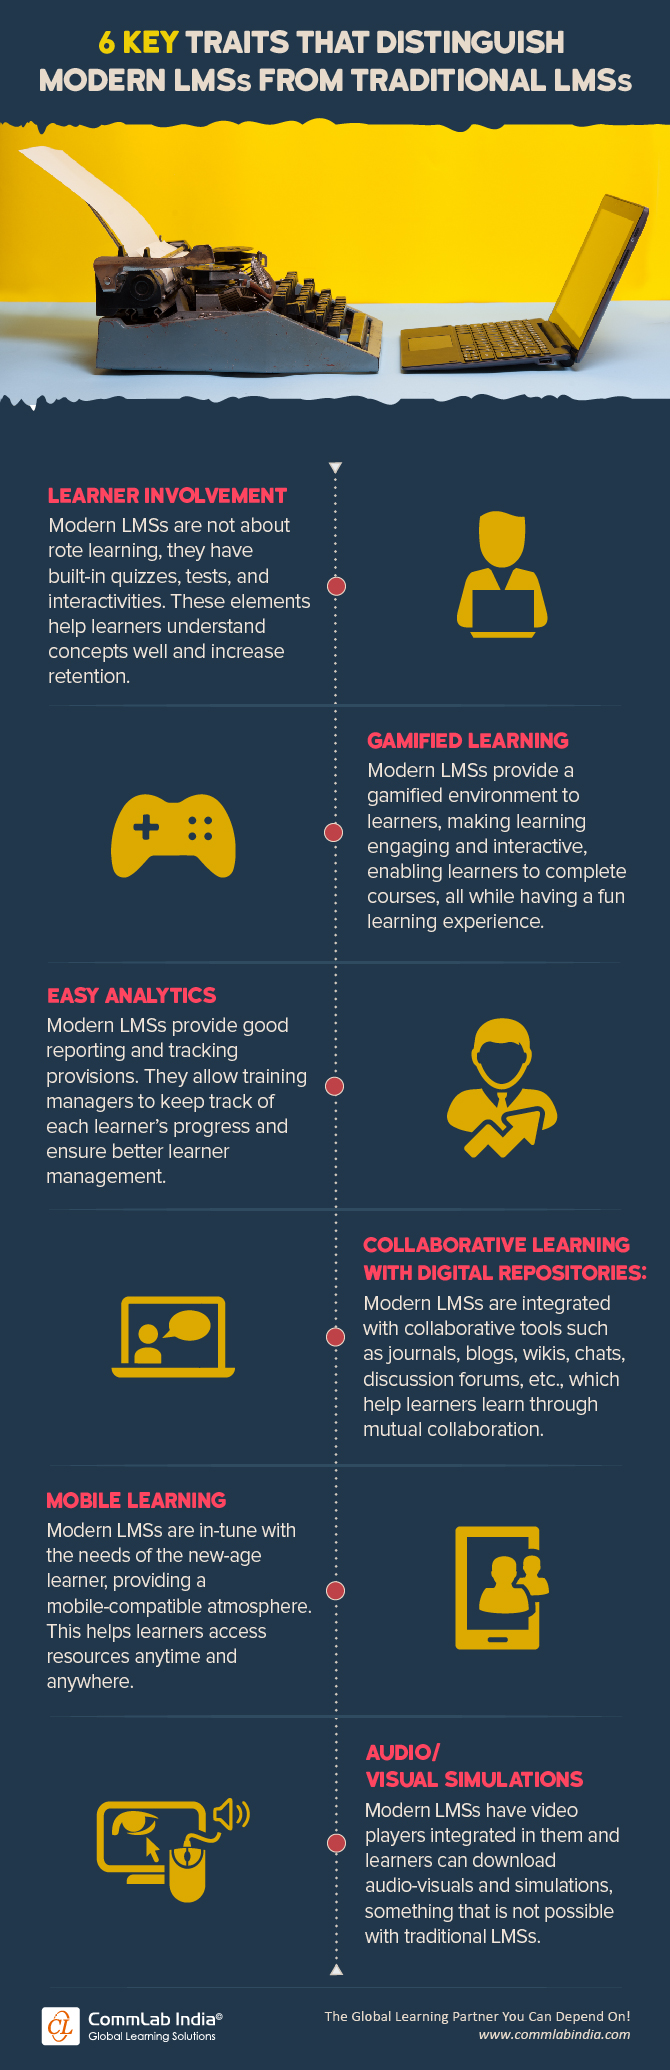 6 Key Traits that Distinguish Modern LMSs From Traditional LMSs [Infographic]